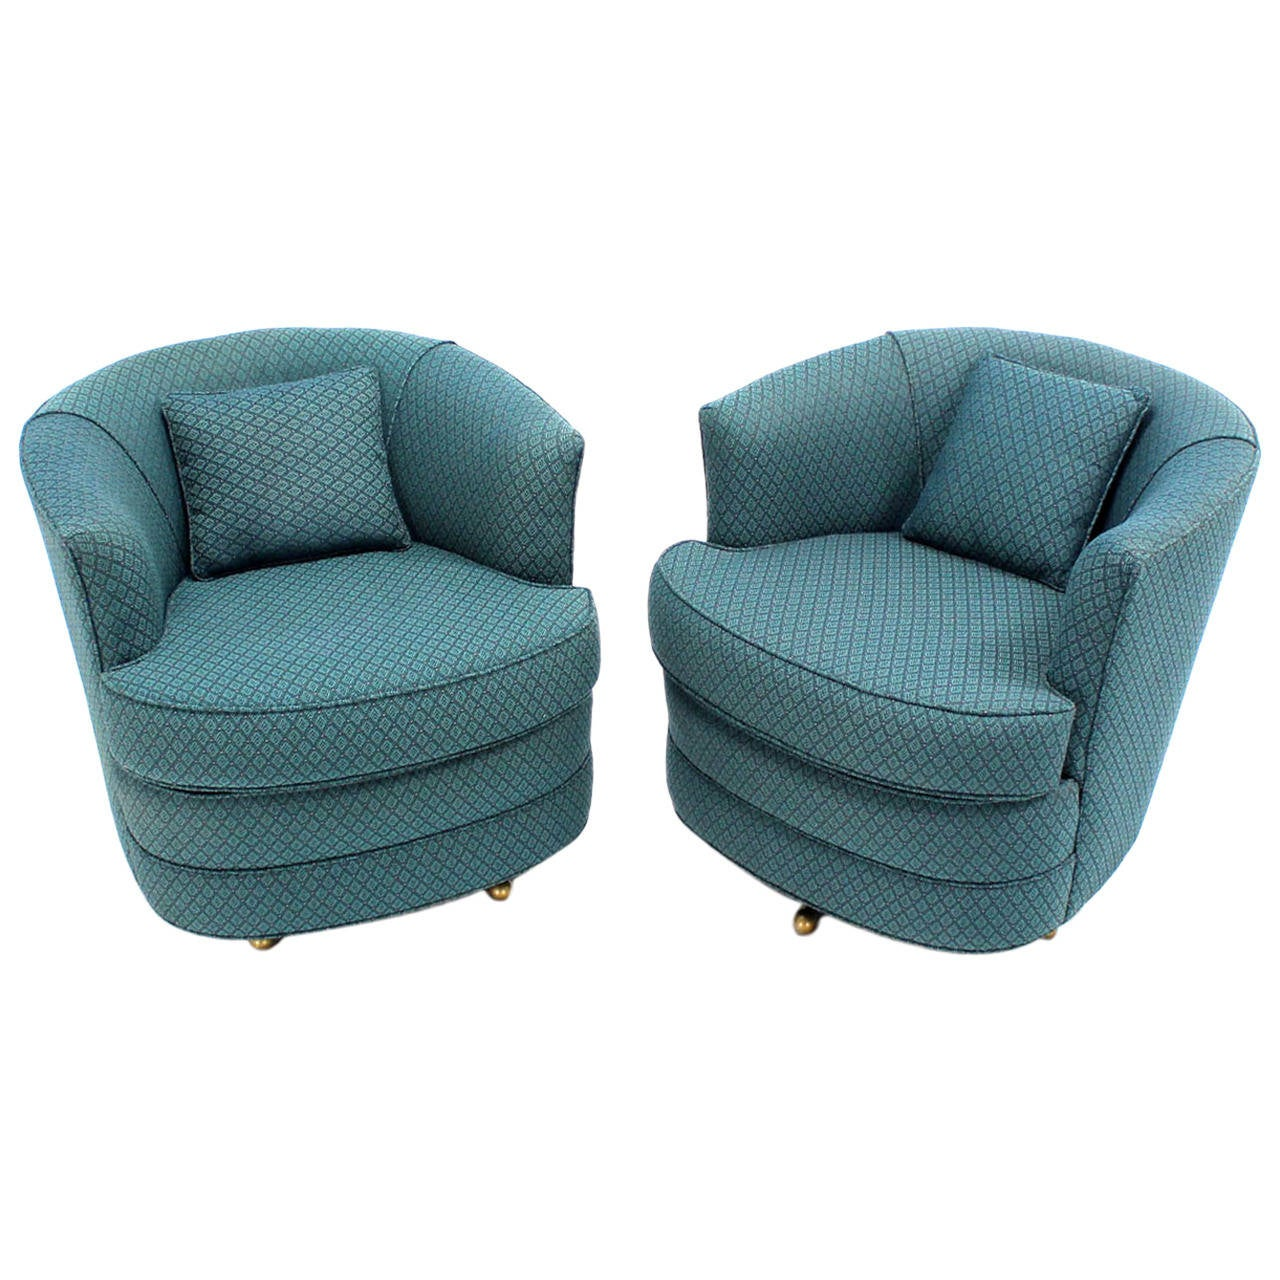 Barrel Chair Swivel Pair Of Swivel Barrel Lounge Chairs For Sale At 1stdibs